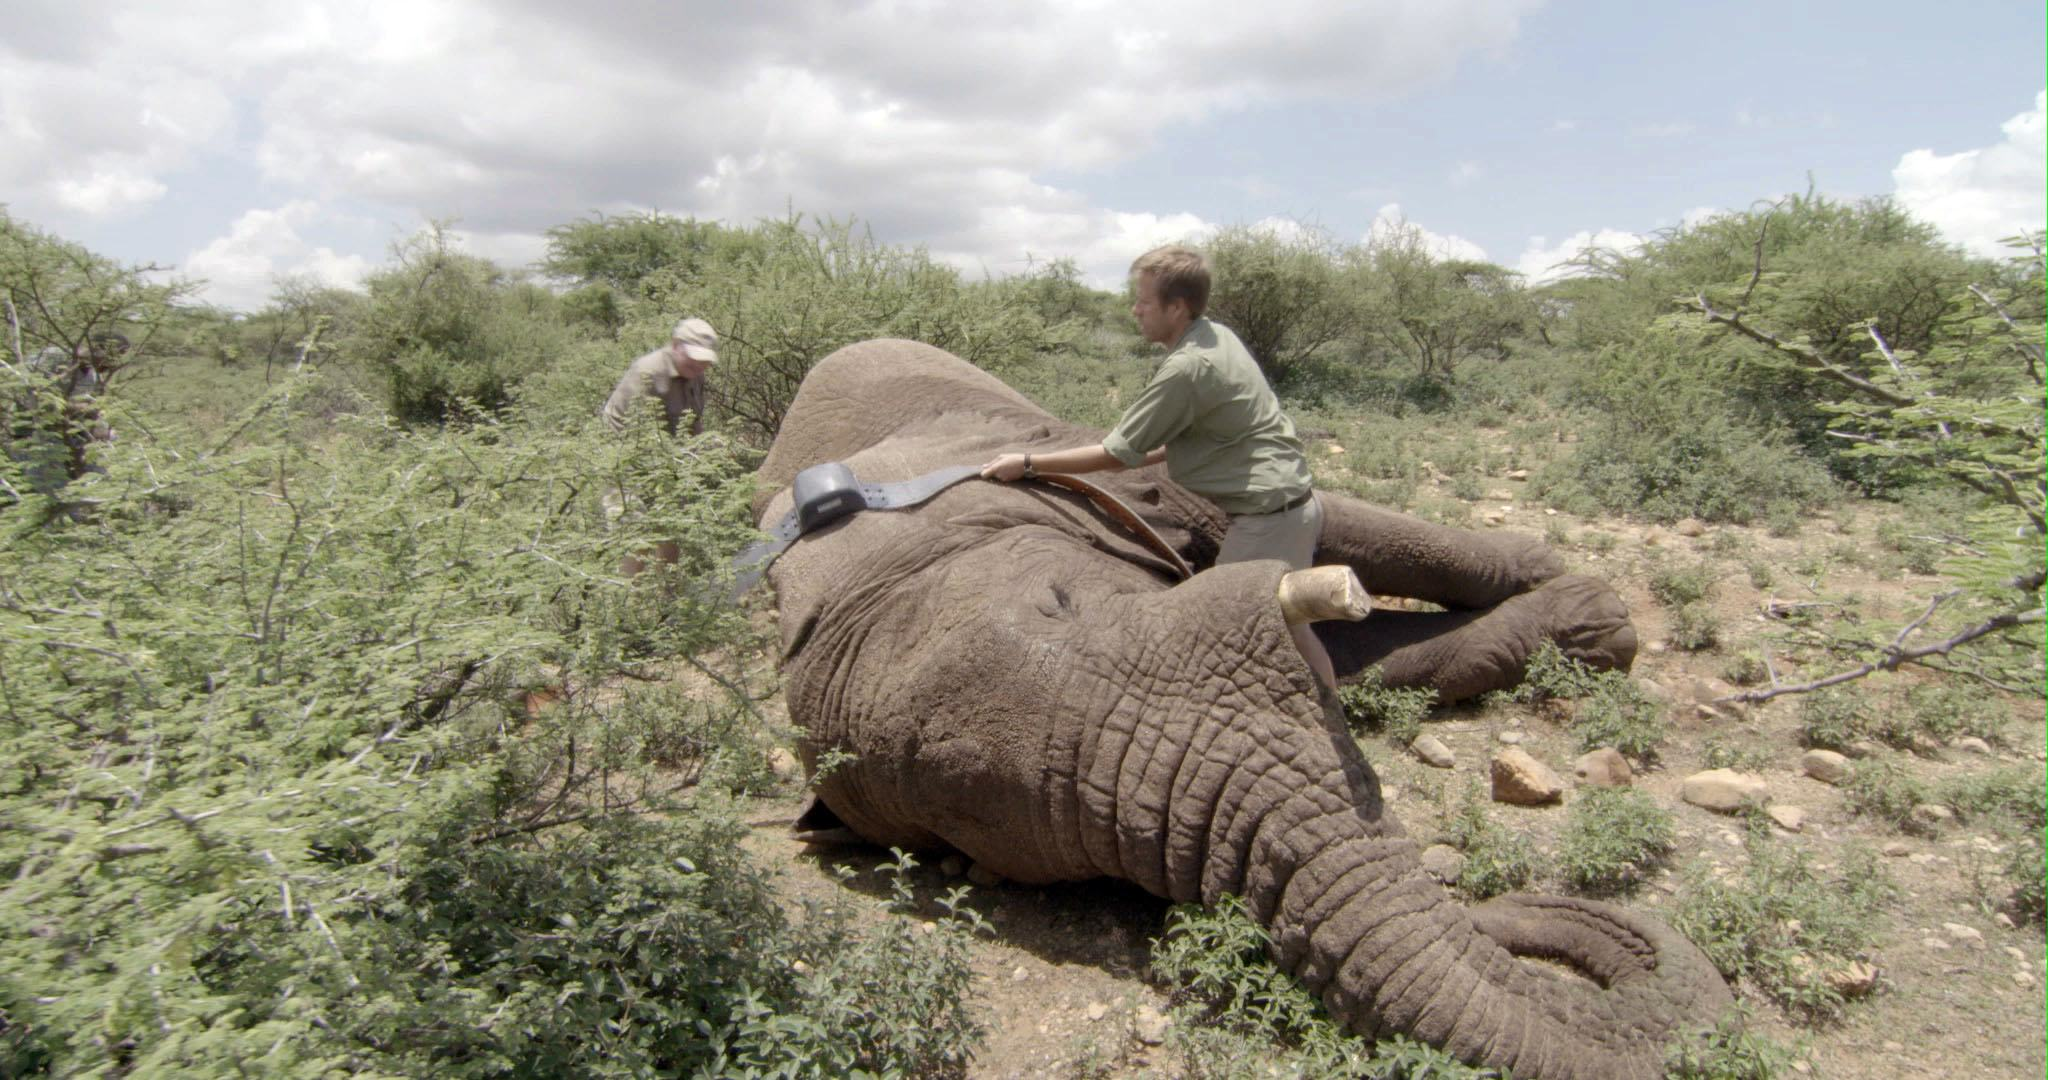 Dr. Mike Chase and a team member work to attach a tracking collar to an elephant.